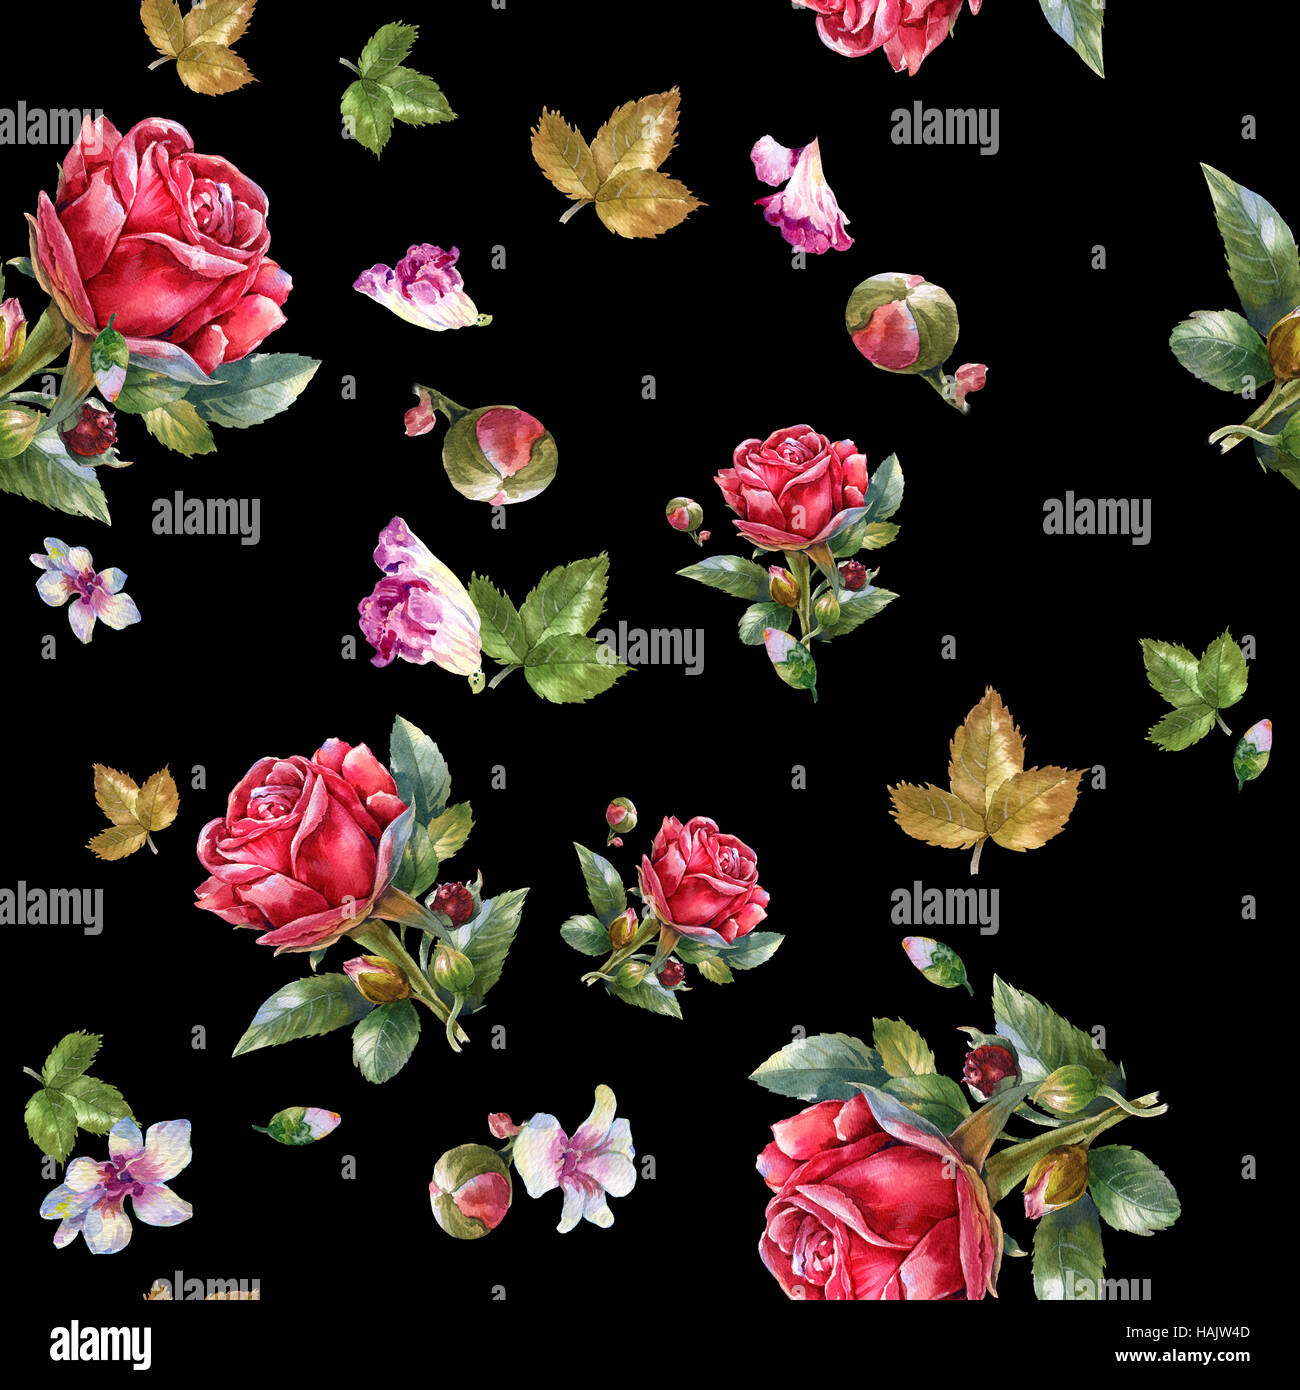 Watercolor Painting Illustration Of Red Rose Seamless Pattern On